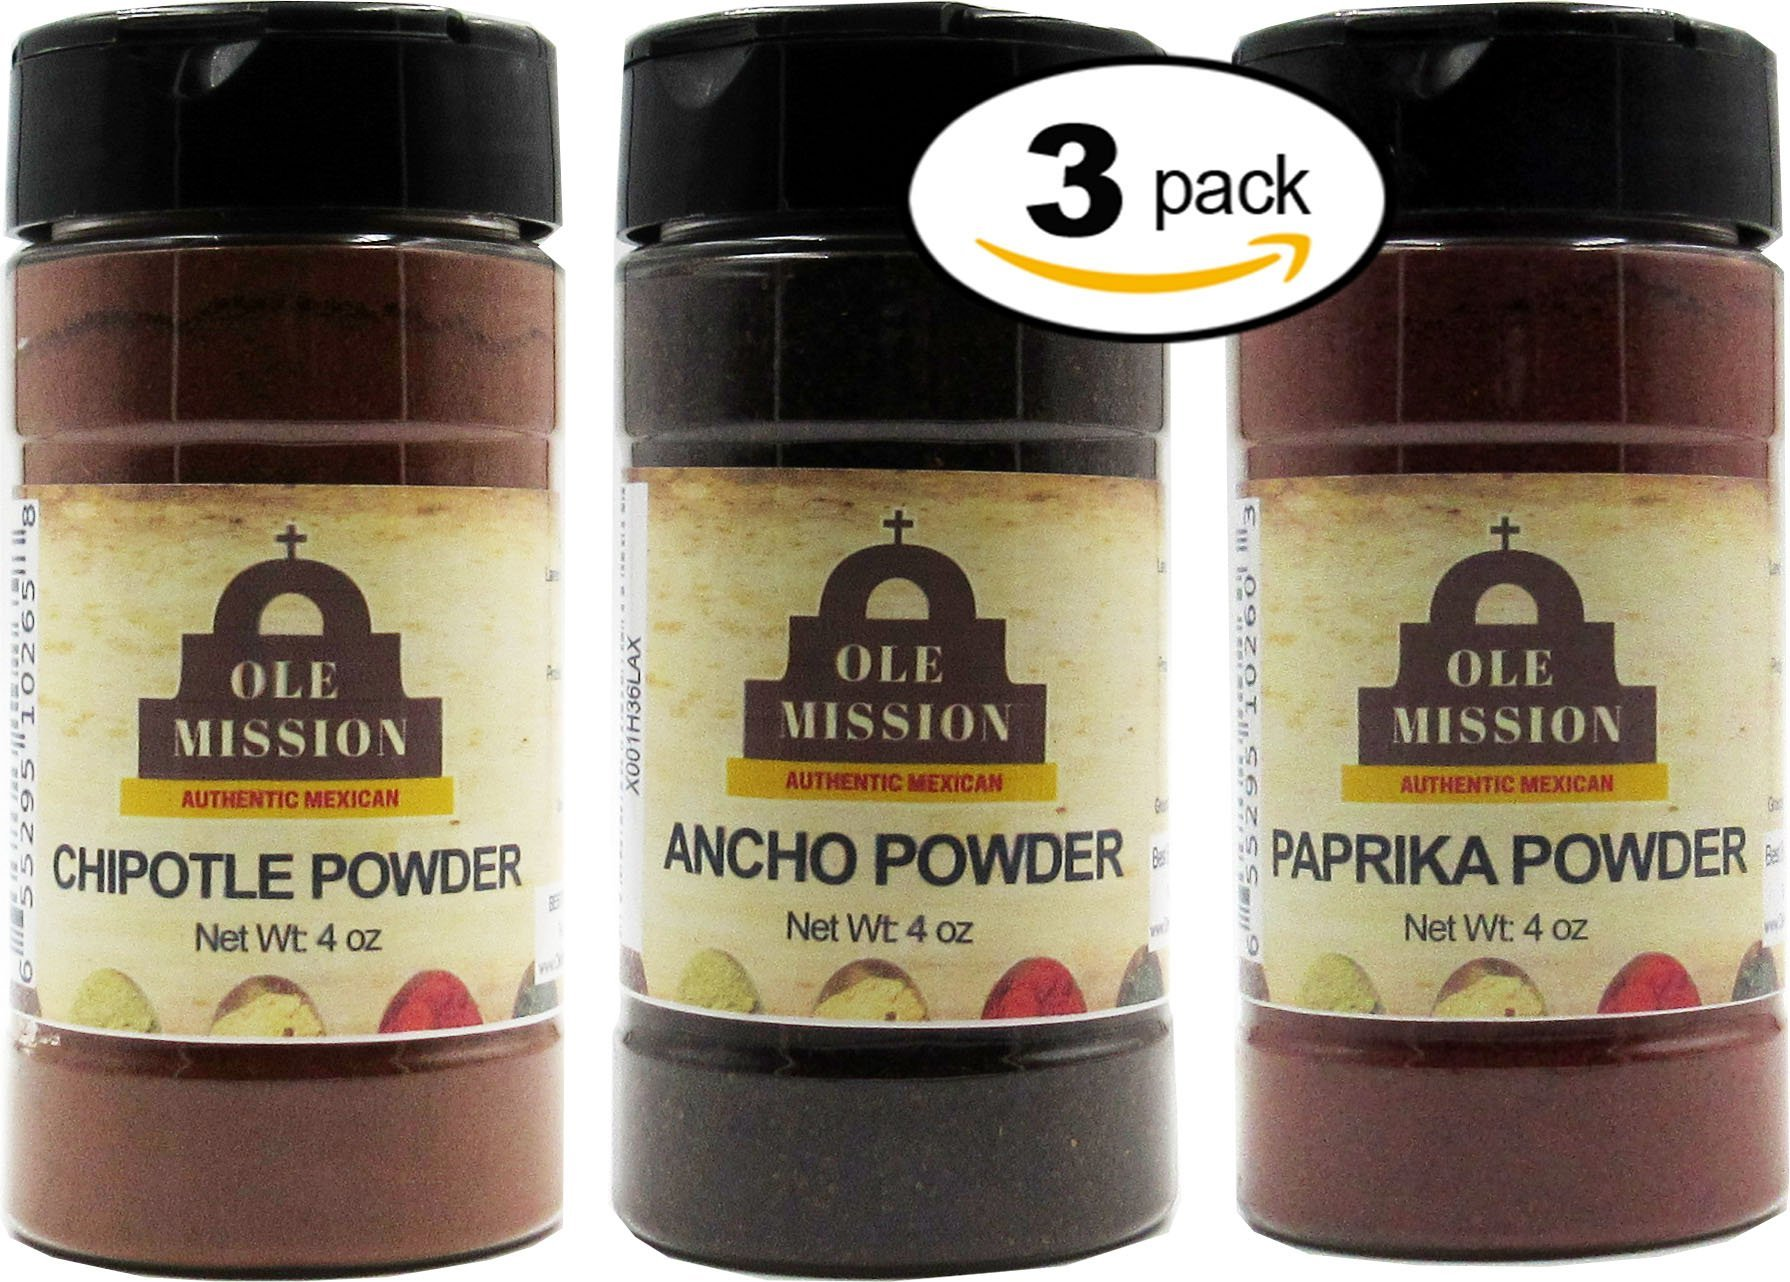 Chipotle, Smoked Paprika, Ancho Powder 3 Pack Mexican Cooking Bundle - Great For Tacos, Rubs, Pork, Mole, Fajitas, Menudo, Chorizo by Ole Mission by Ole Mission (Image #1)